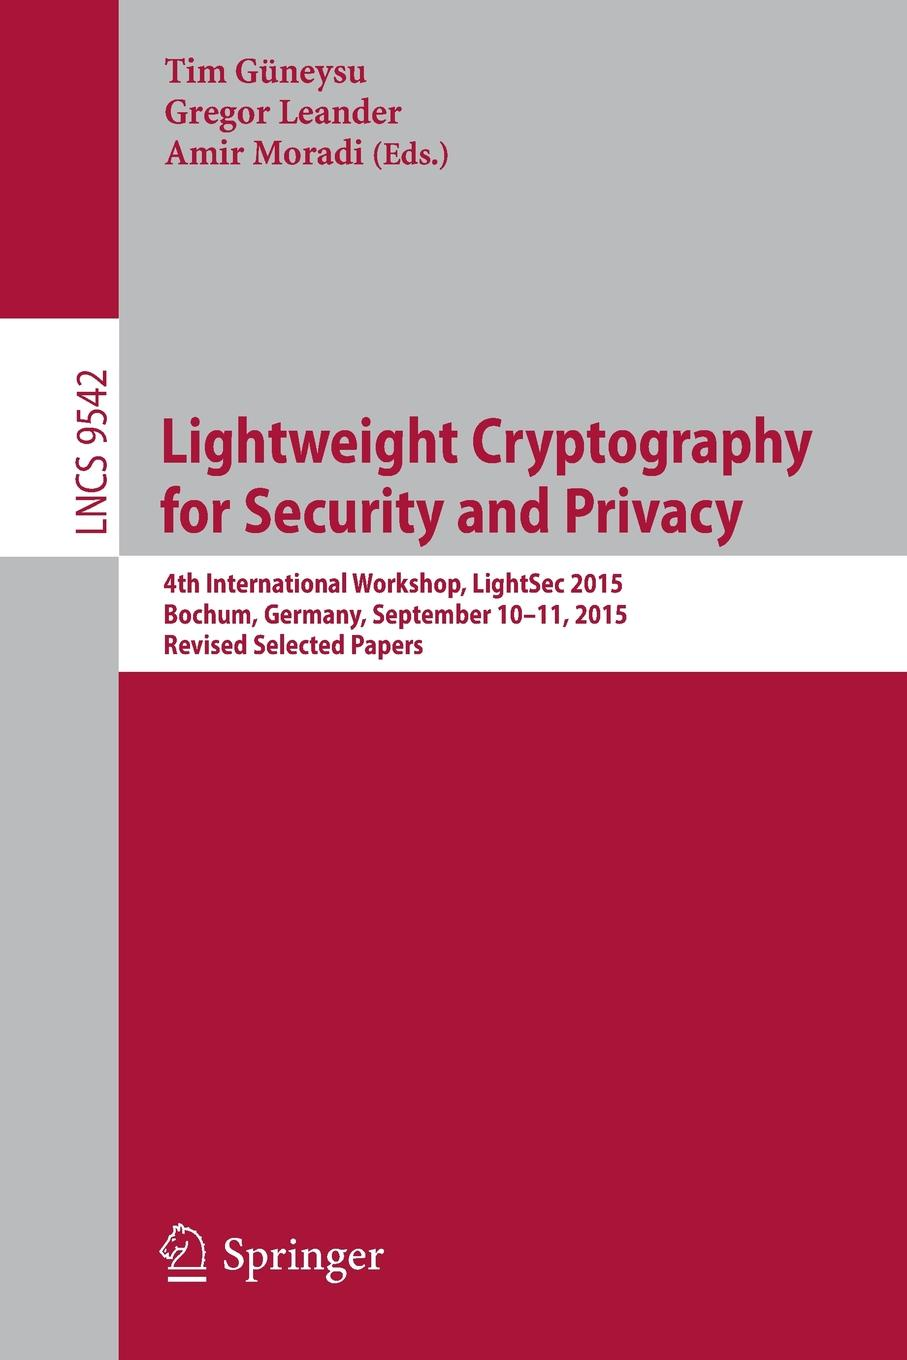 Lightweight Cryptography for Security and Privacy. 4th International Workshop, LightSec 2015, Bochum, Germany, September 10-11, 2015, Revised Selected Papers cyber security and privacy third cyber security and privacy eu forum csp forum 2014 athens greece may 21 22 2014 revised selected papers